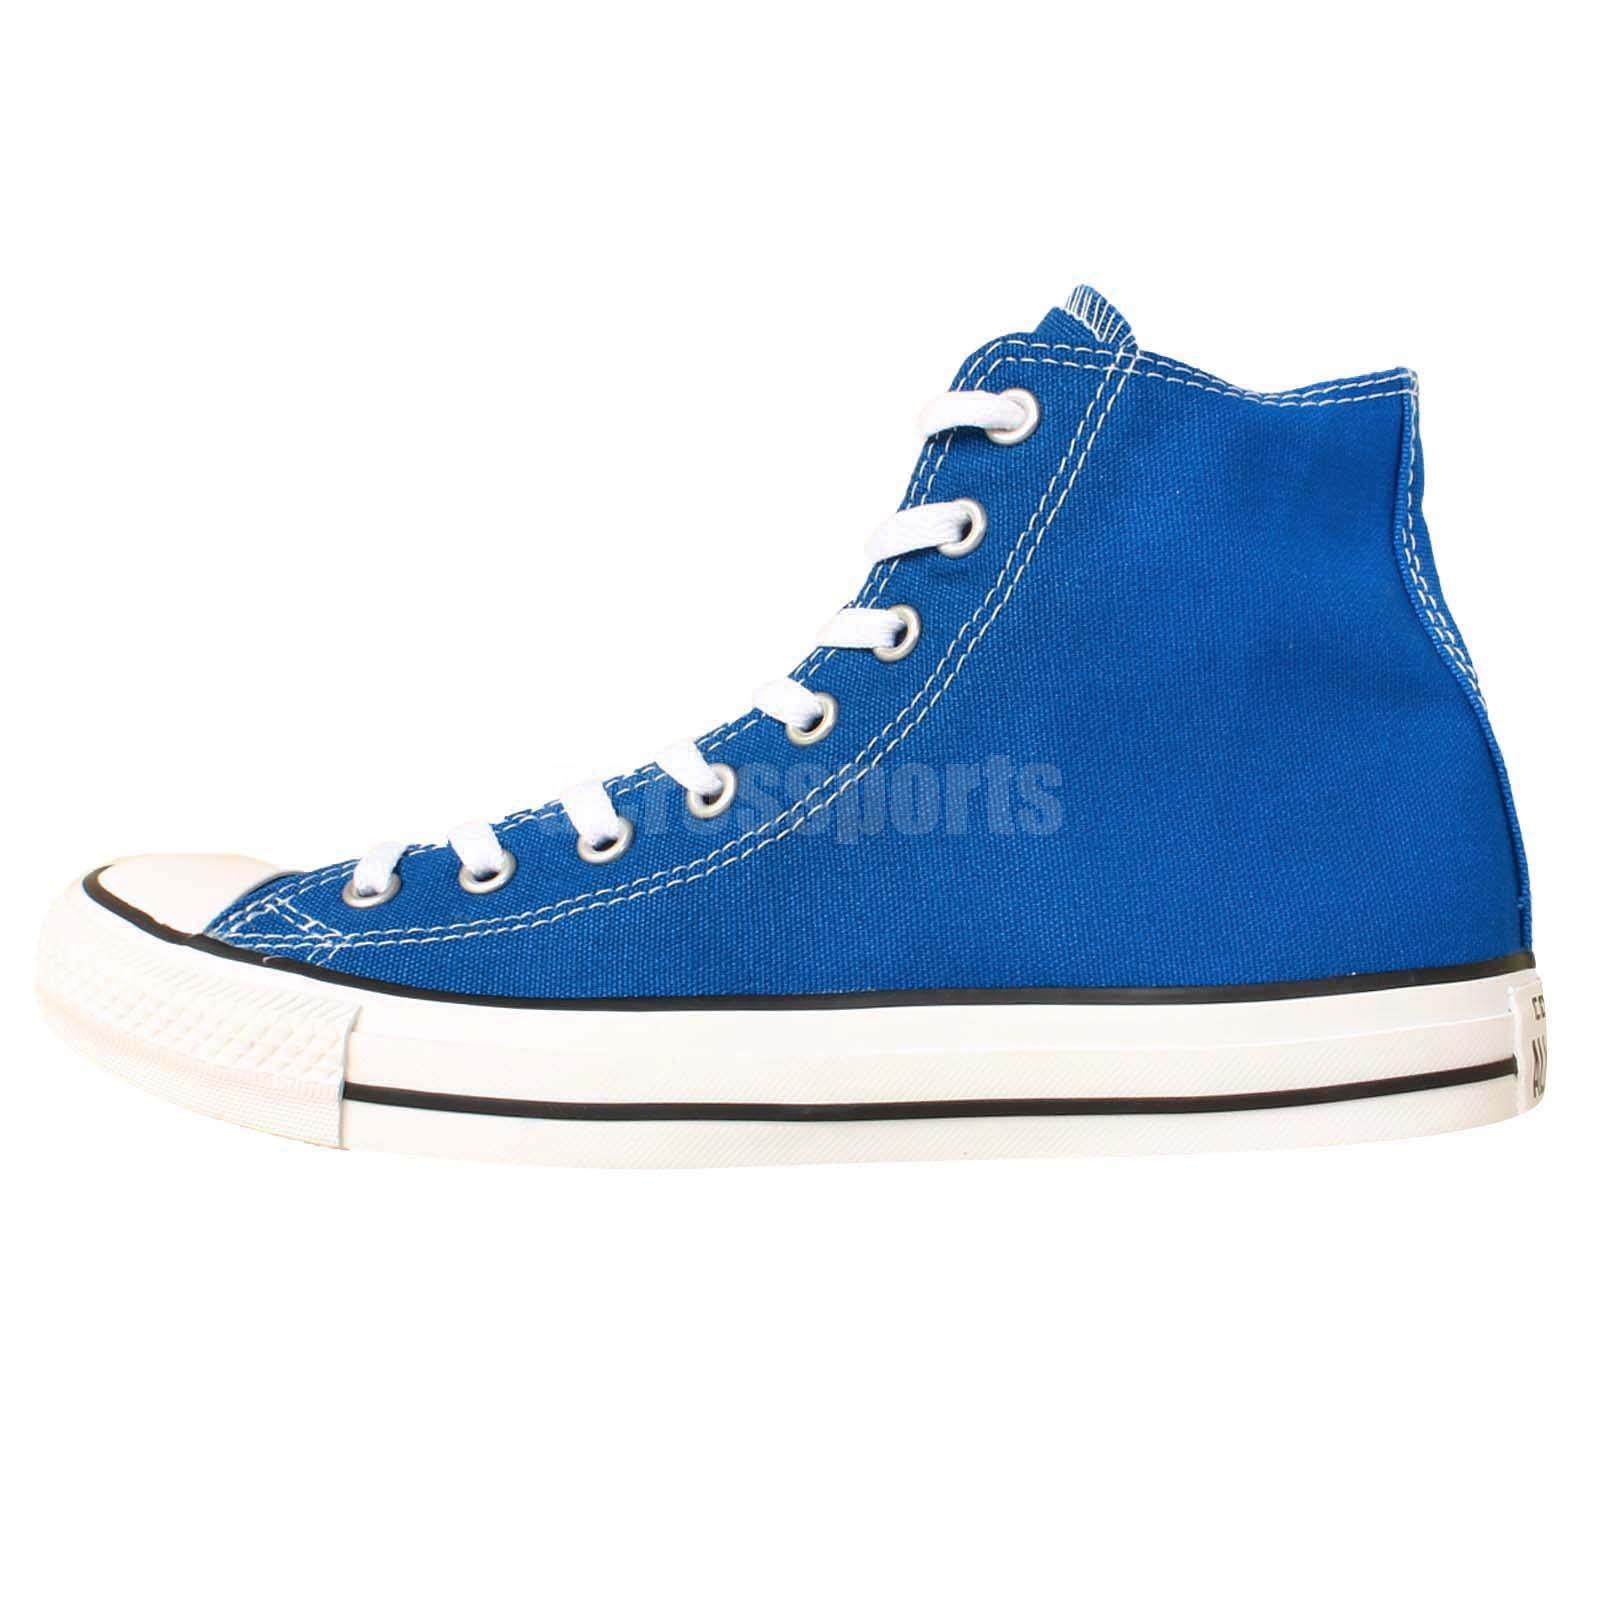 Converse Chuck Taylor All Star Blue White Classic Men Women Casual Shoes 144800C